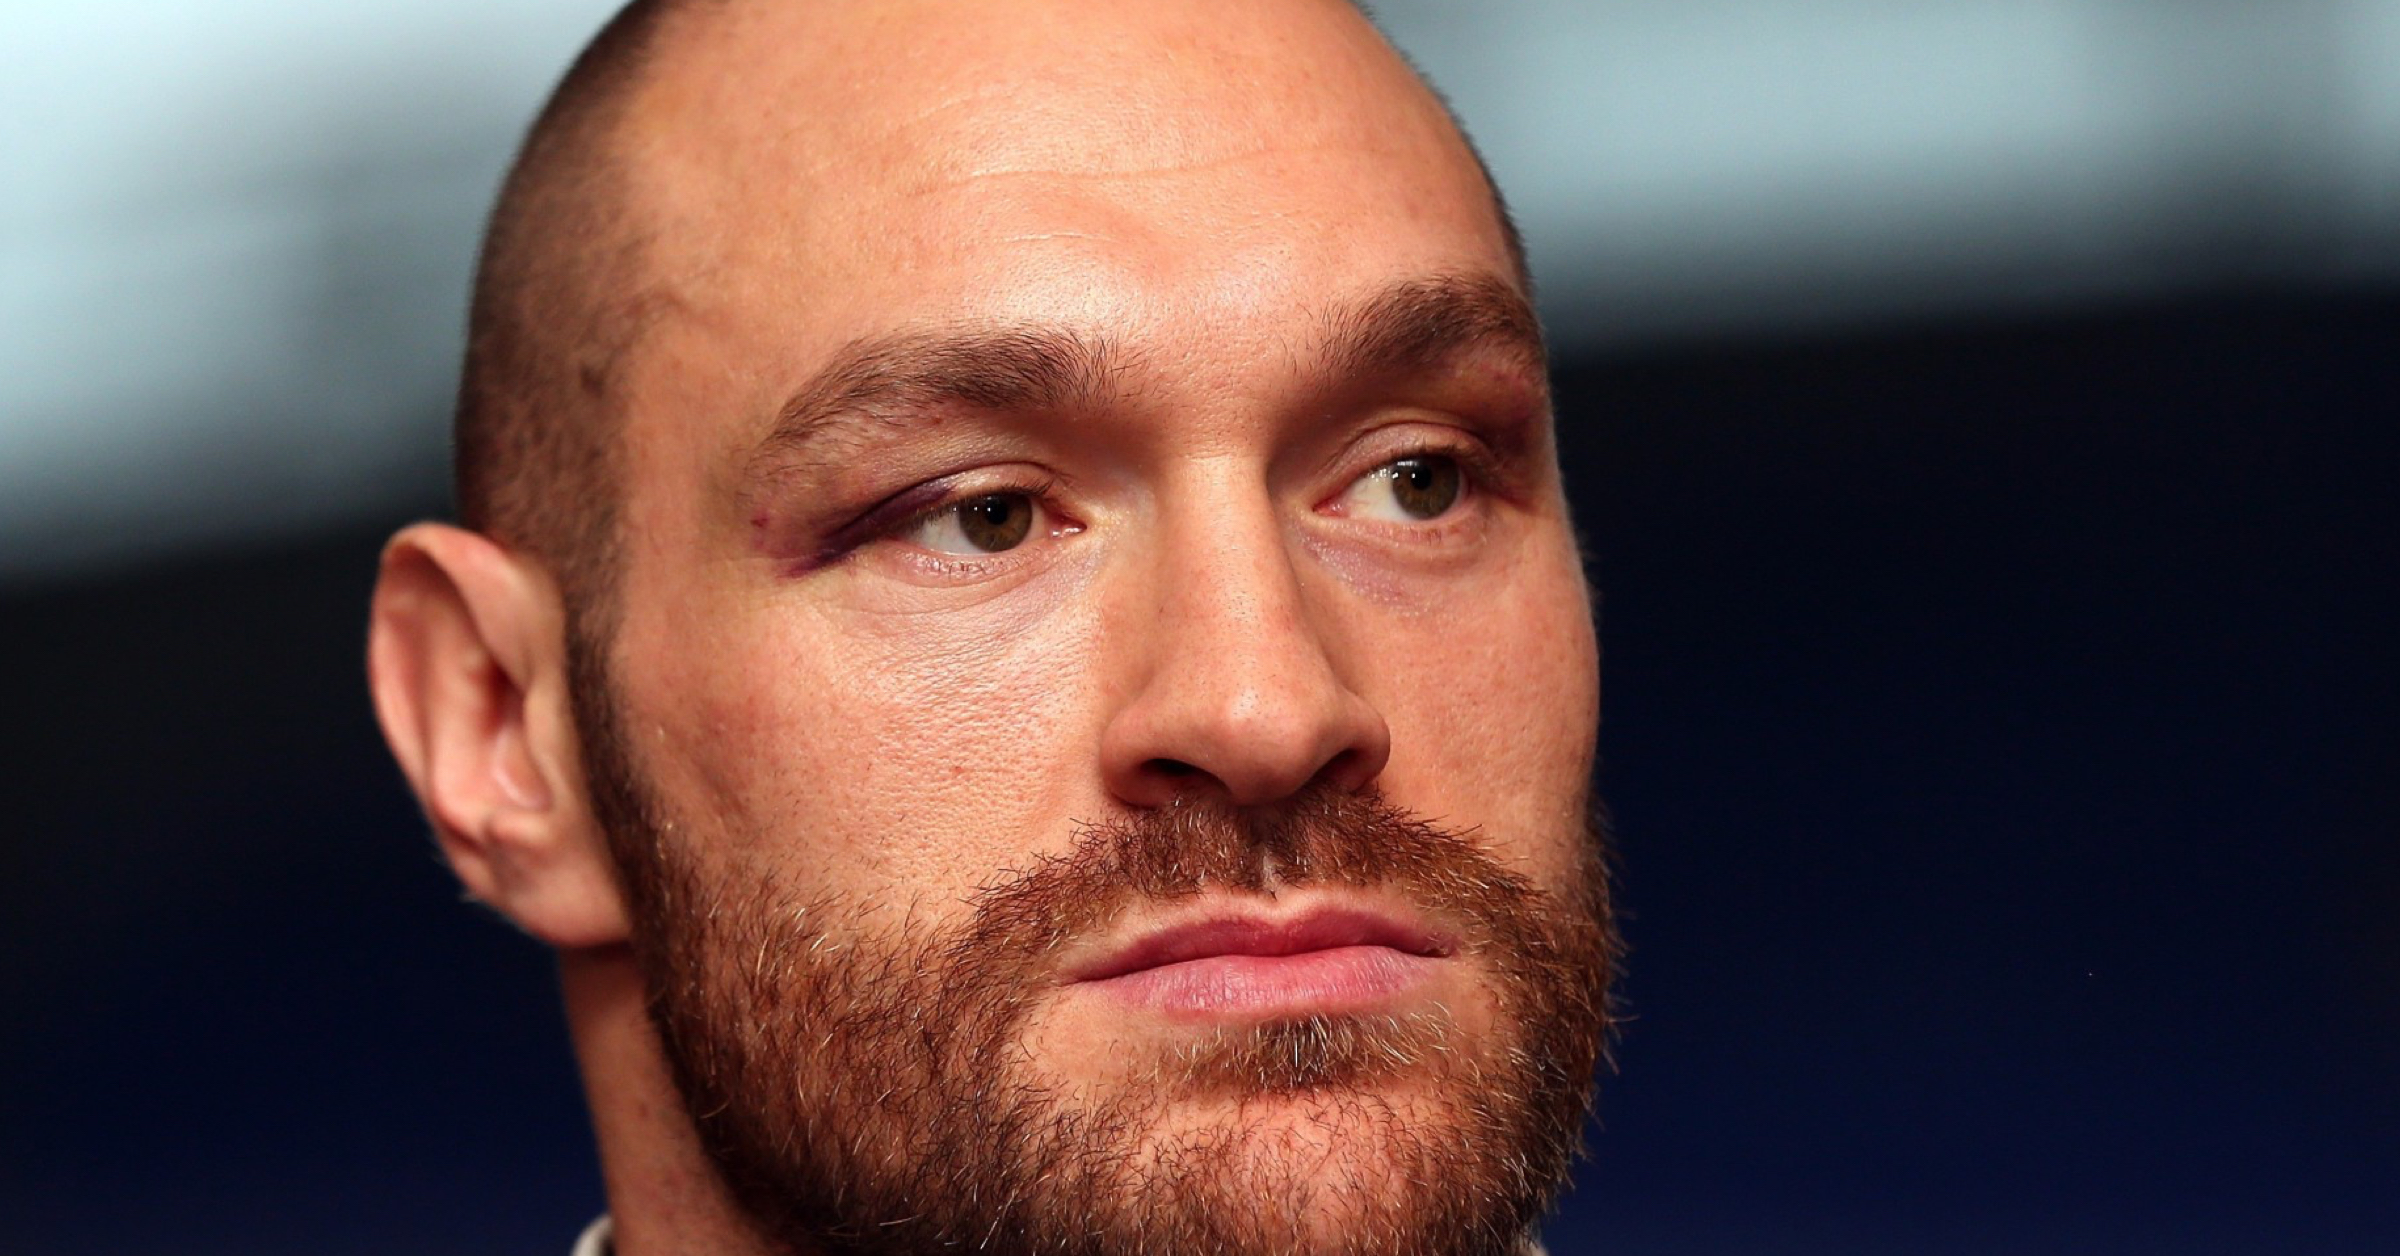 Tyson Fury Posts Deeply Open Letter About His Physical & Mental Health